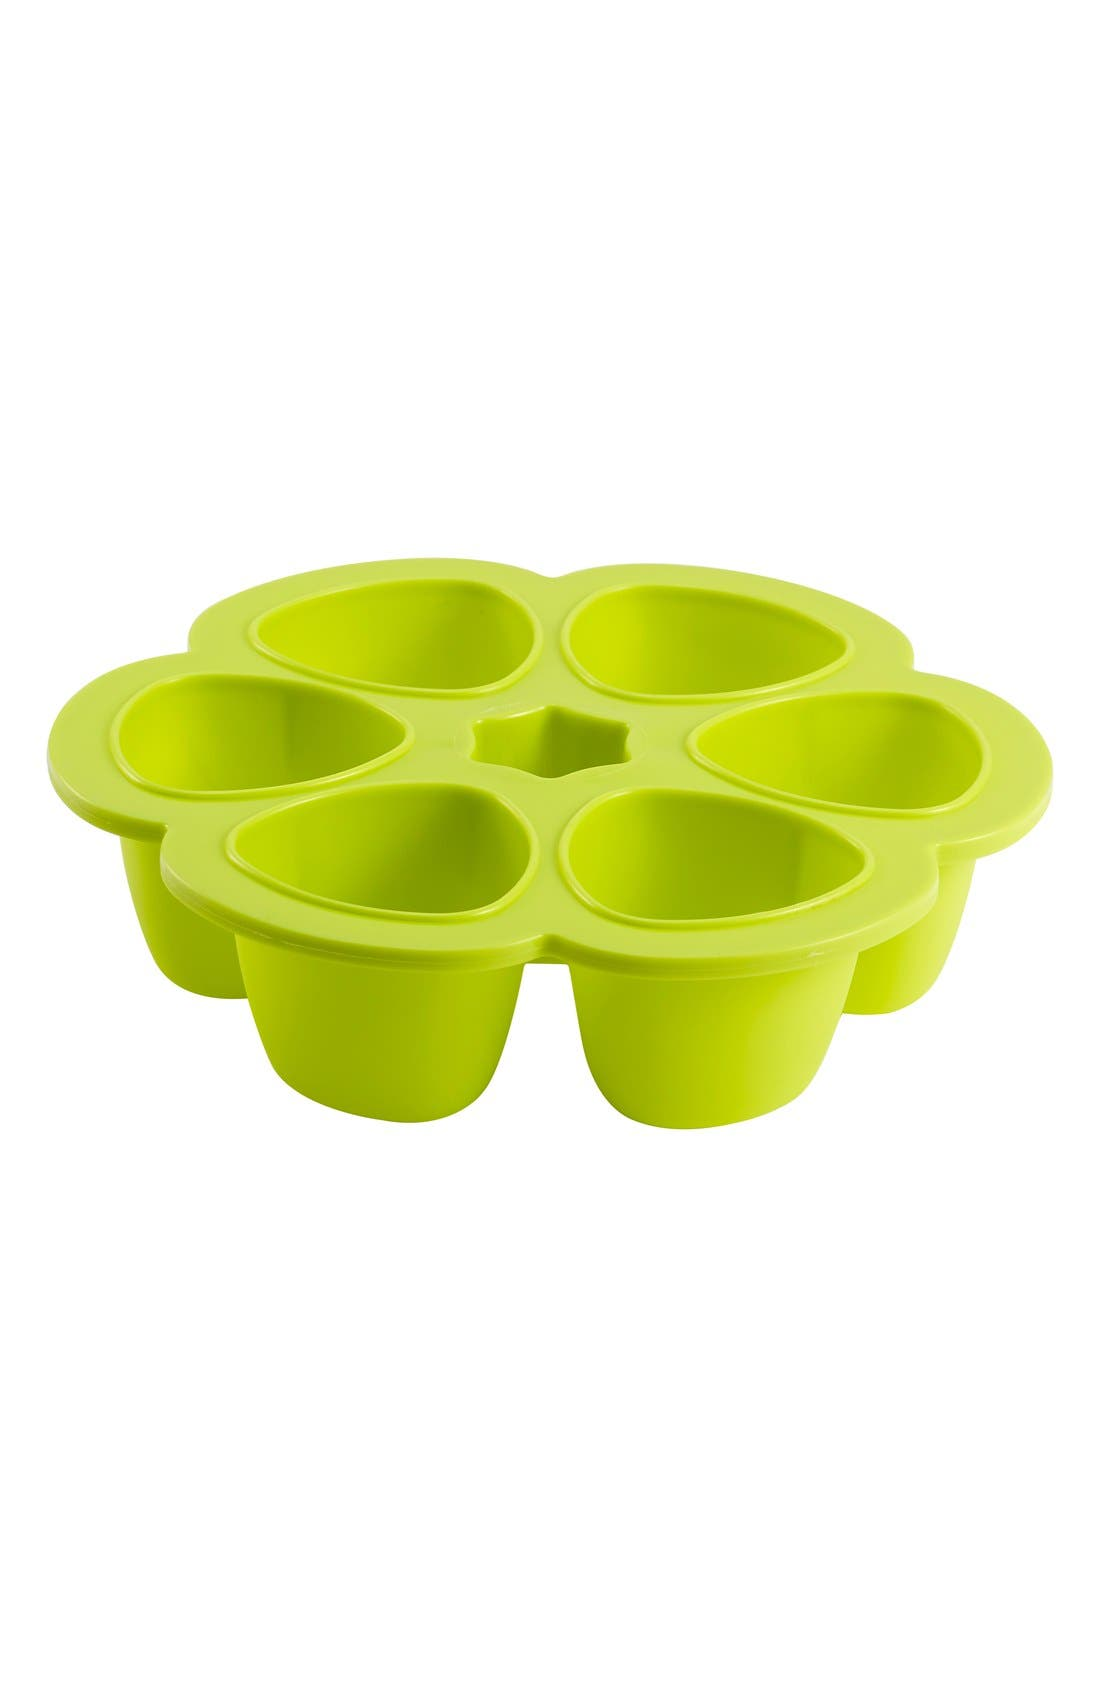 'Multiportions' 3 oz. Food Cup Tray,                         Main,                         color, 320